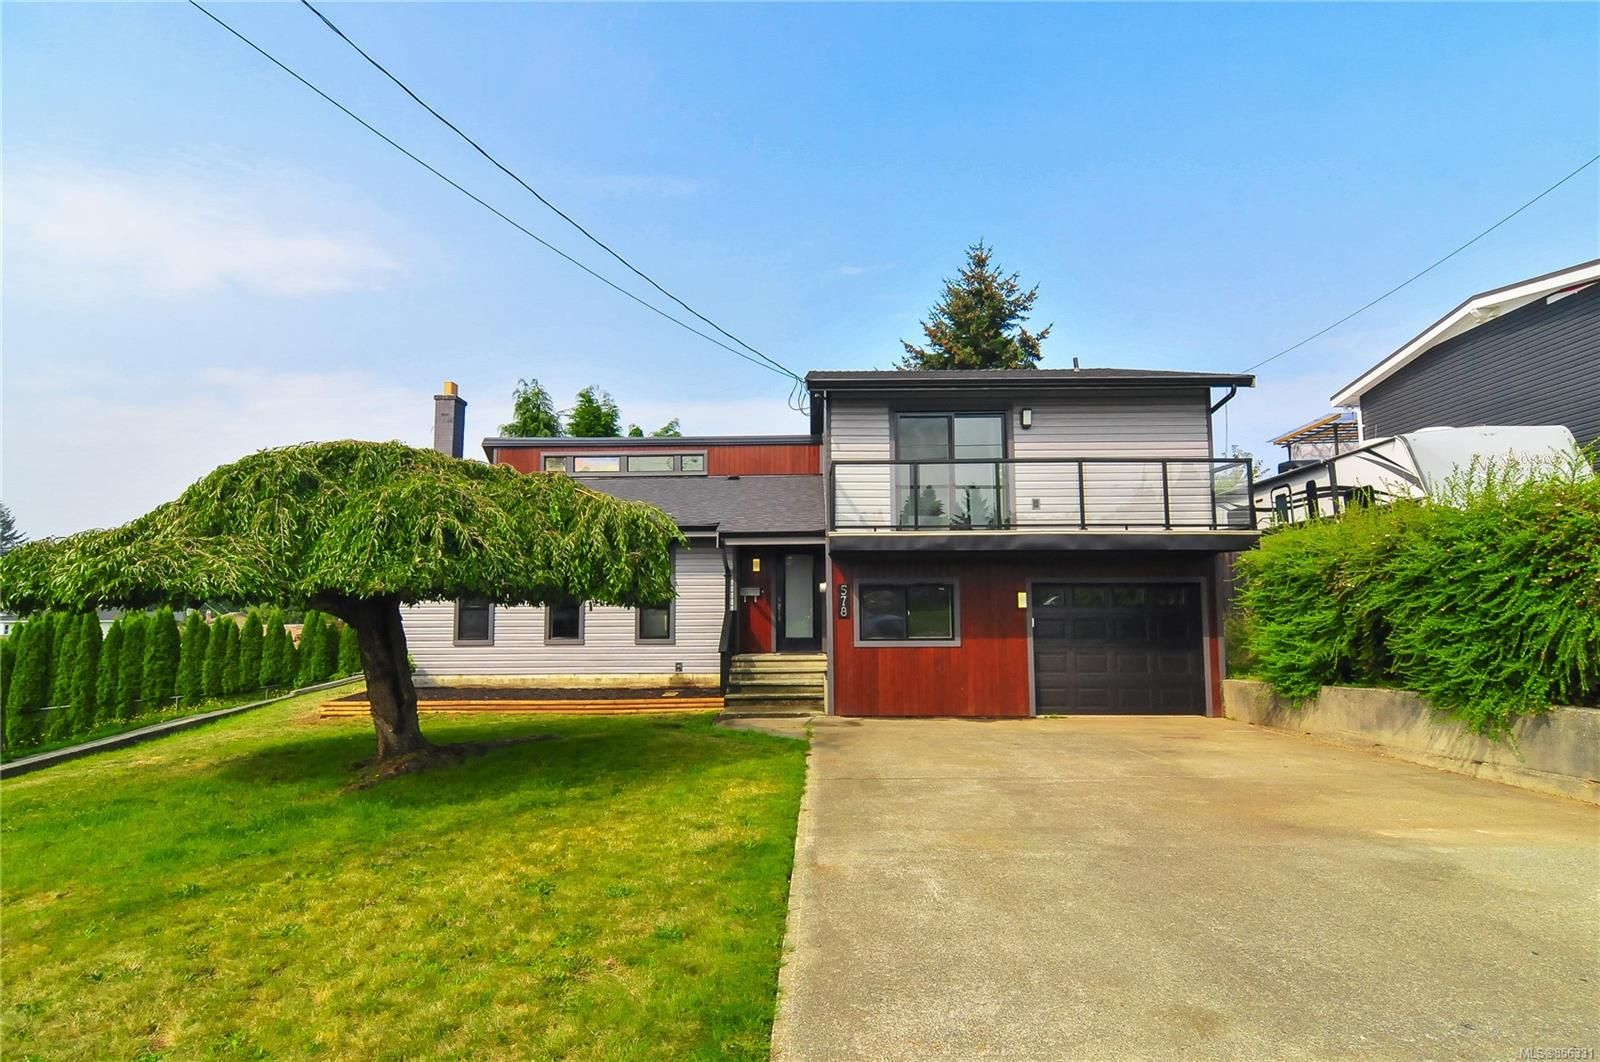 Main Photo: 578 Charstate Dr in : CR Campbell River Central House for sale (Campbell River)  : MLS®# 856331